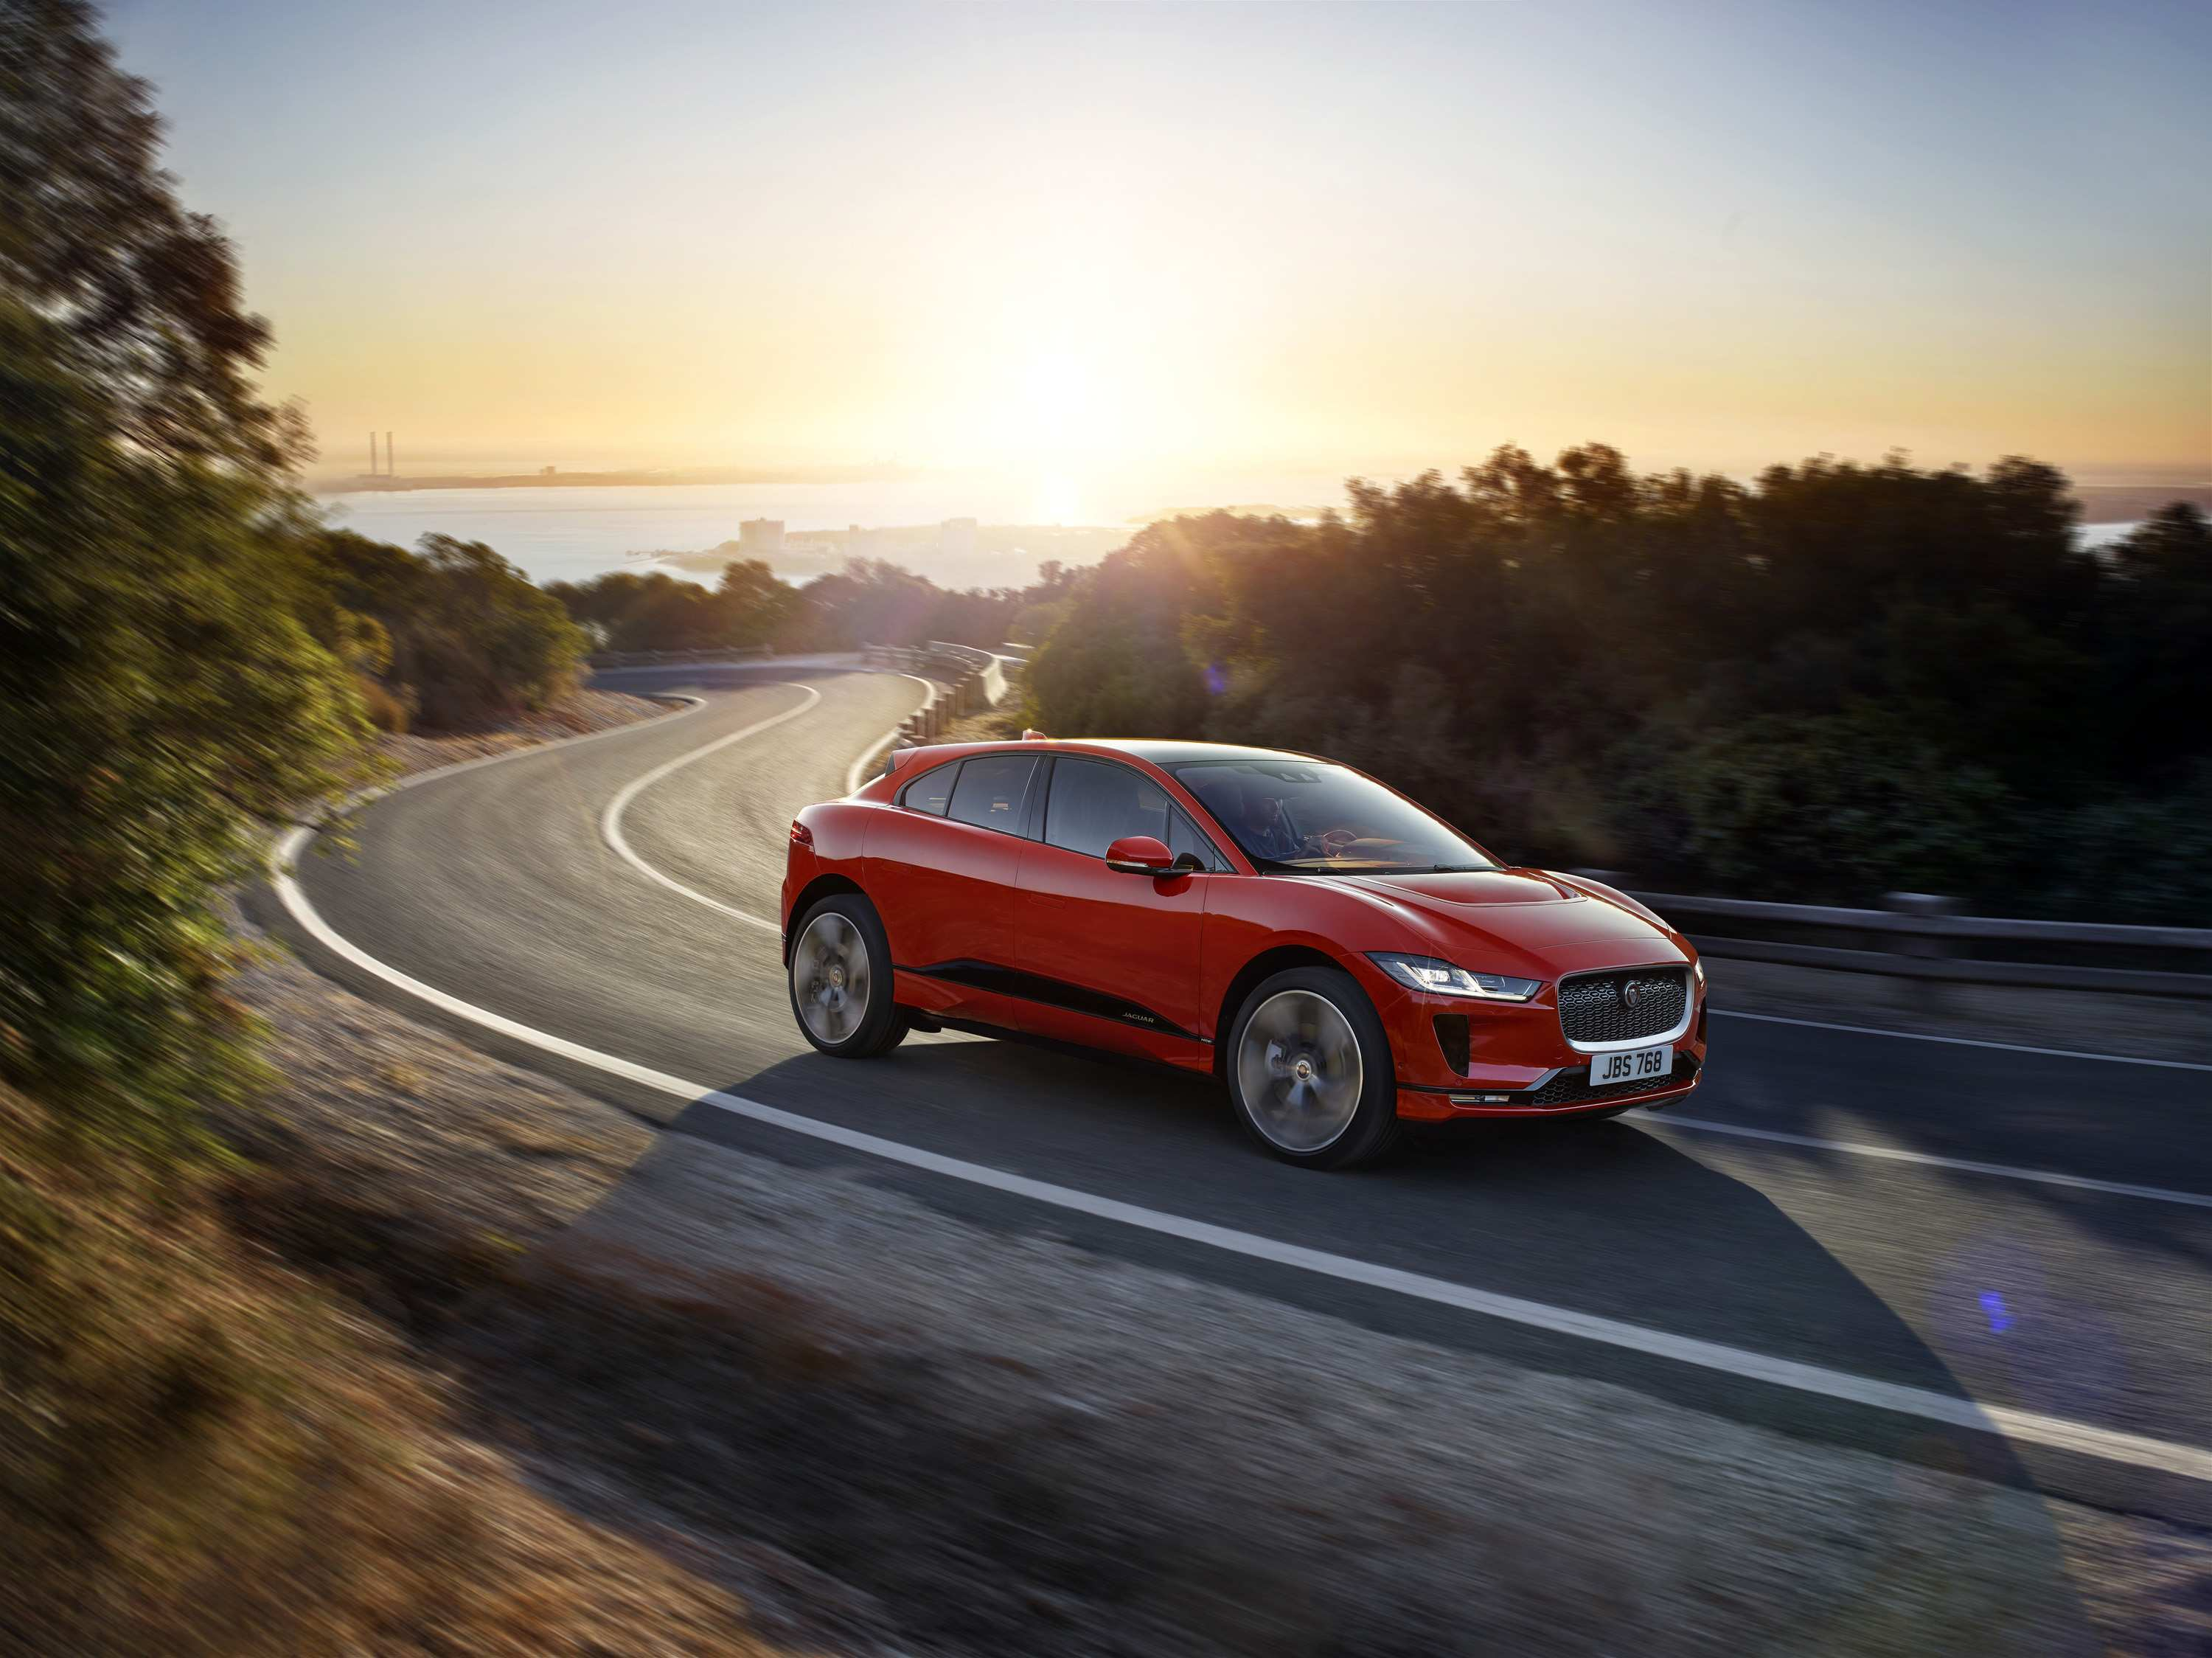 66 All New 2019 Jaguar Xq Crossover Redesign